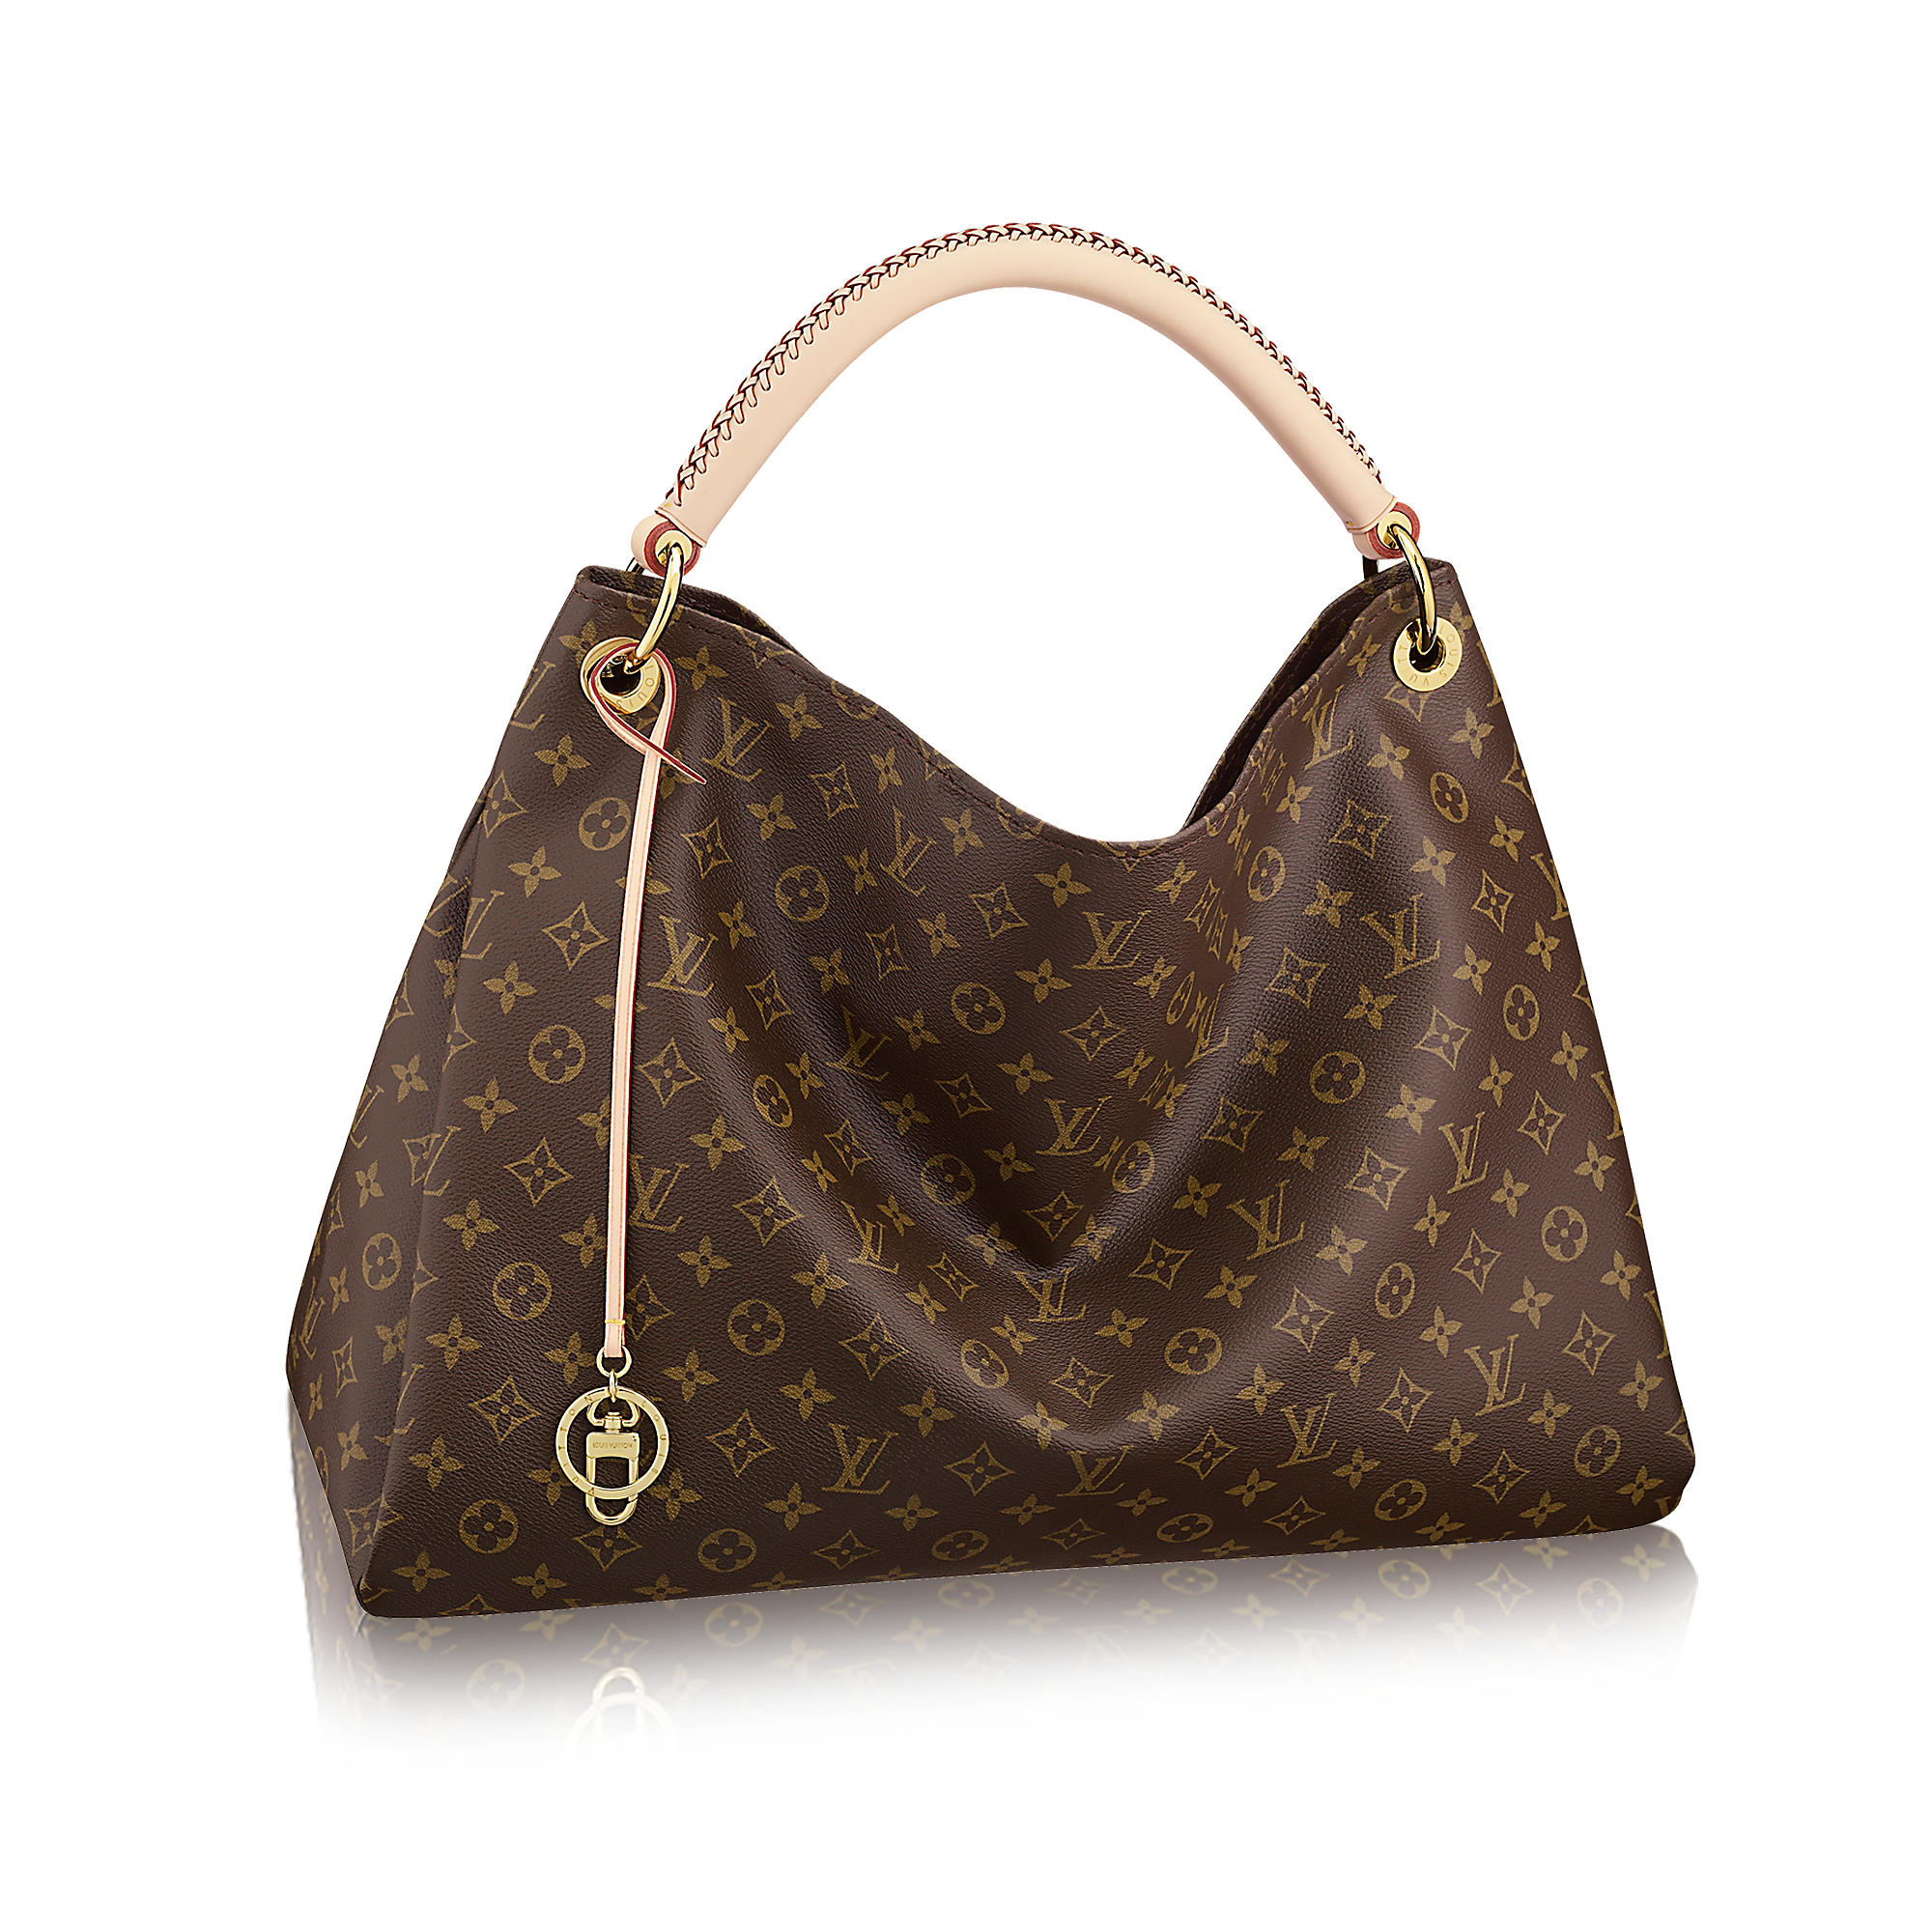 c1e27e662de4 Louis Vuitton Artsy Mm Handbag